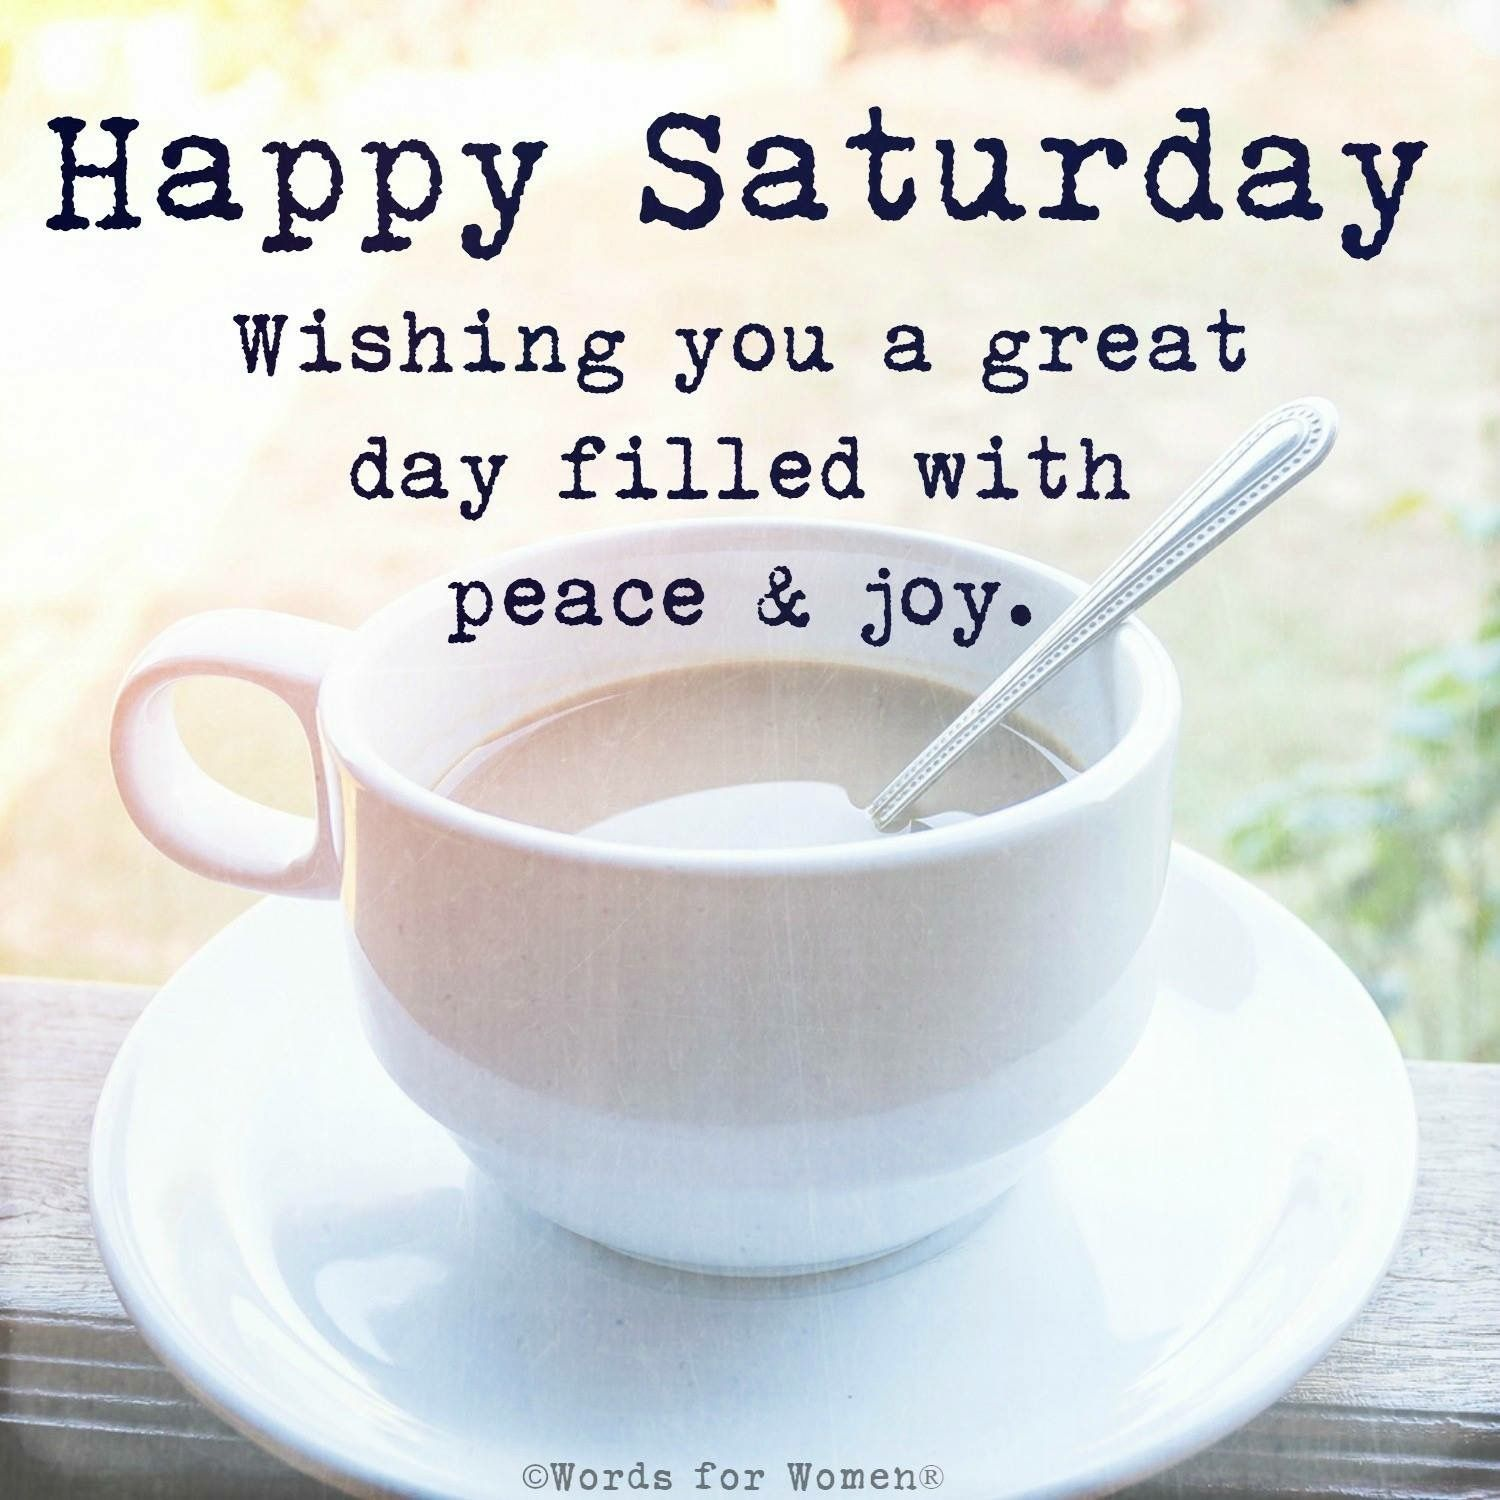 Happy Saturday Enjoying Every Moment With My Loves Saturday Quotes Happy Saturday Quotes Happy Saturday